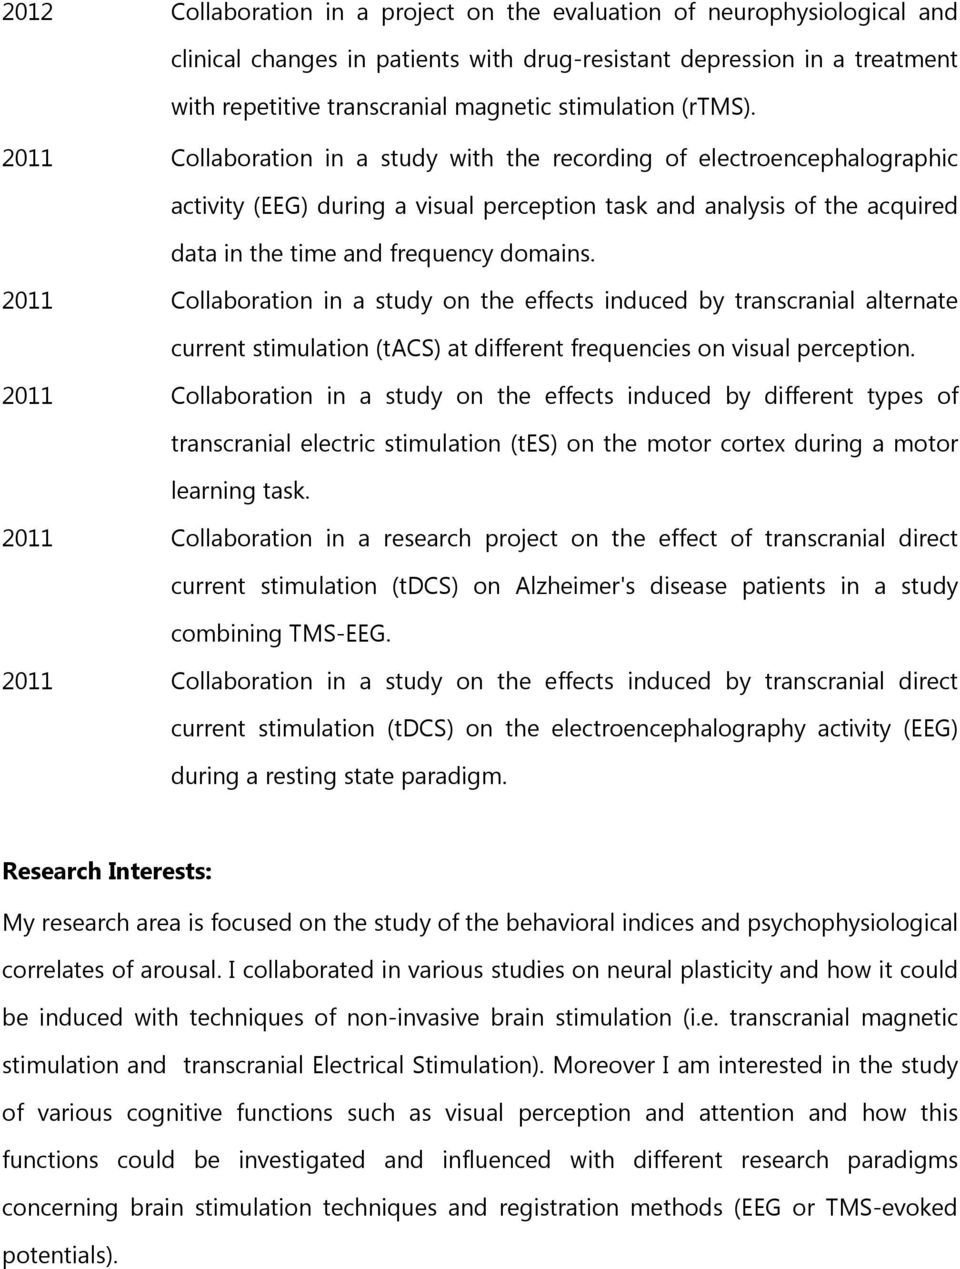 2011 Collaboration in a study with the recording of electroencephalographic activity (EEG) during a visual perception task and analysis of the acquired data in the time and frequency domains.